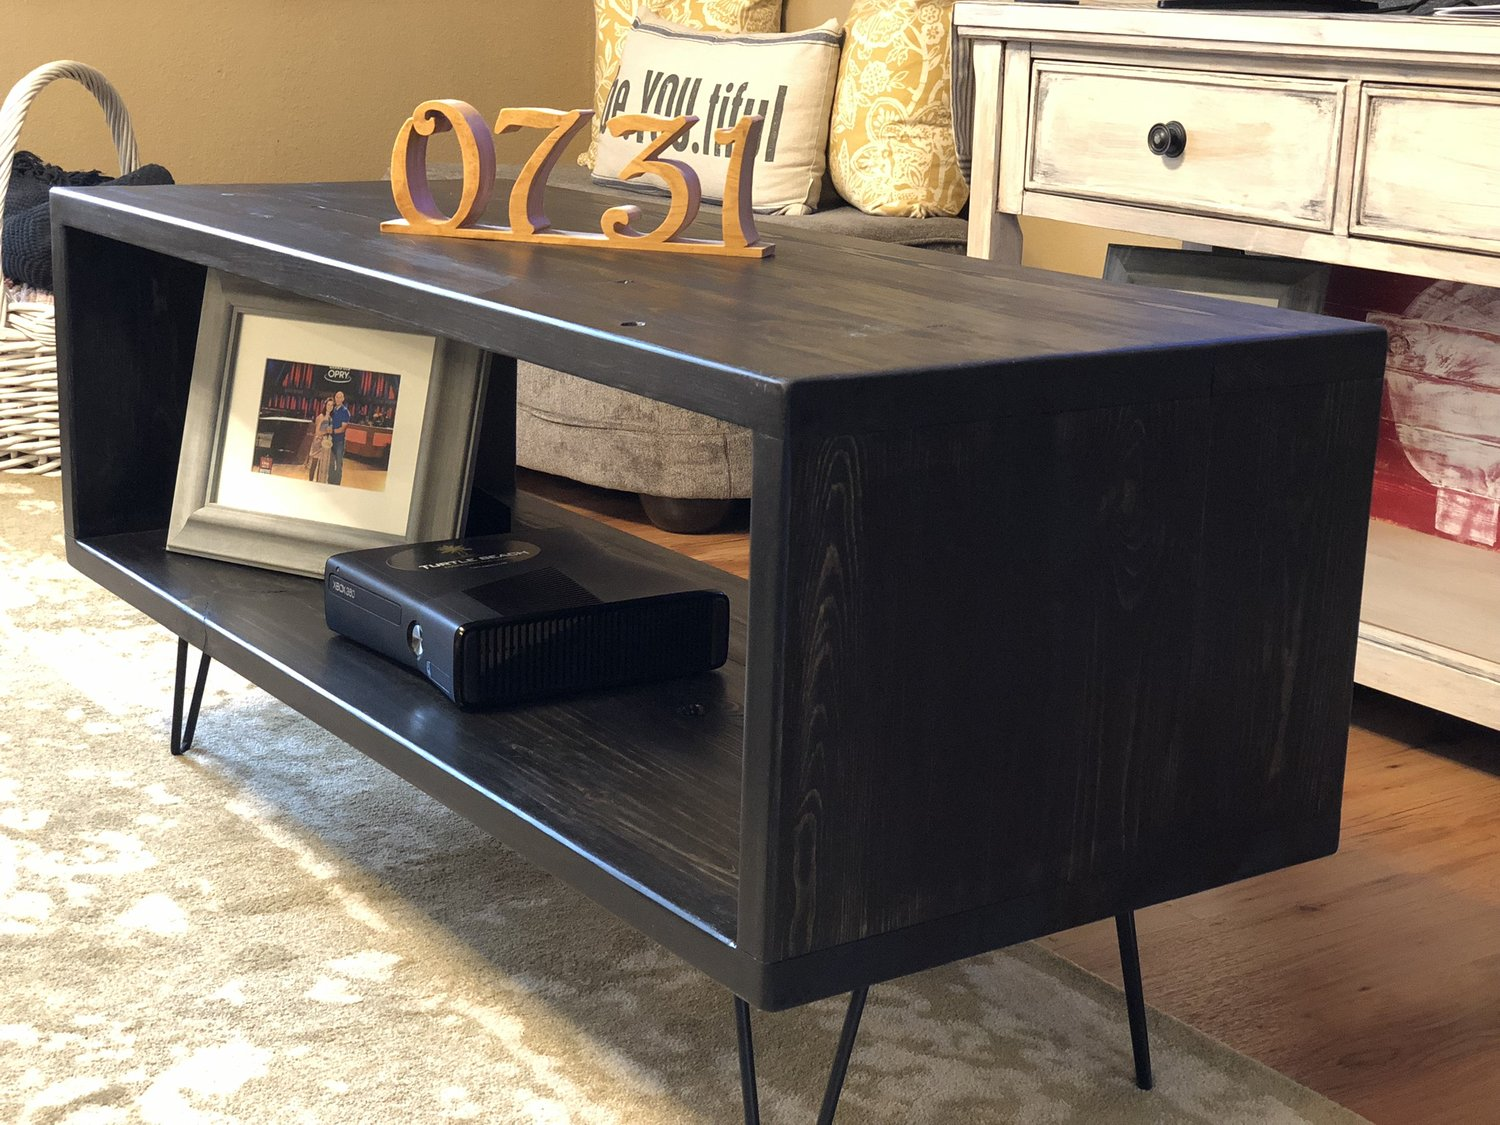 Mid Century Modern Tv Stand 731 Woodworks Diy And How To Woodworking Video Guides 731 Woodworks We Build Custom Furniture Diy Guides Monticello Ar